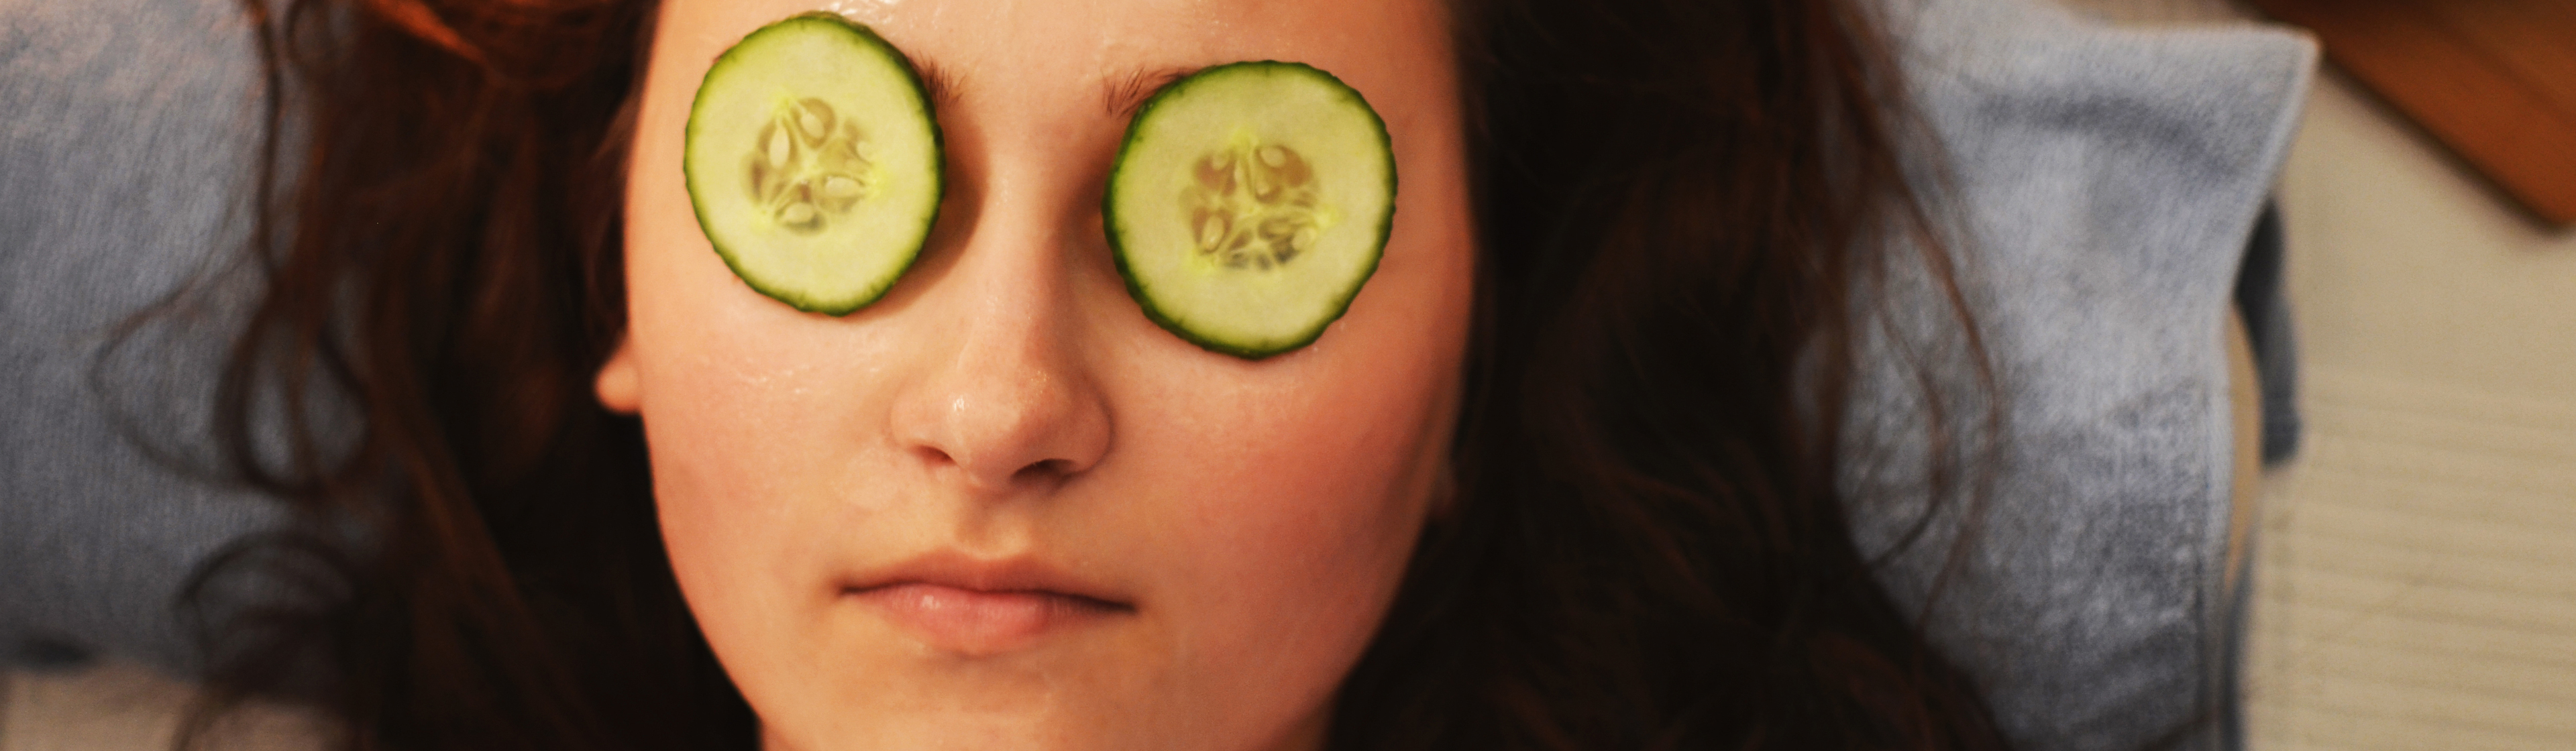 How to Look After Your Skin in Your 20s